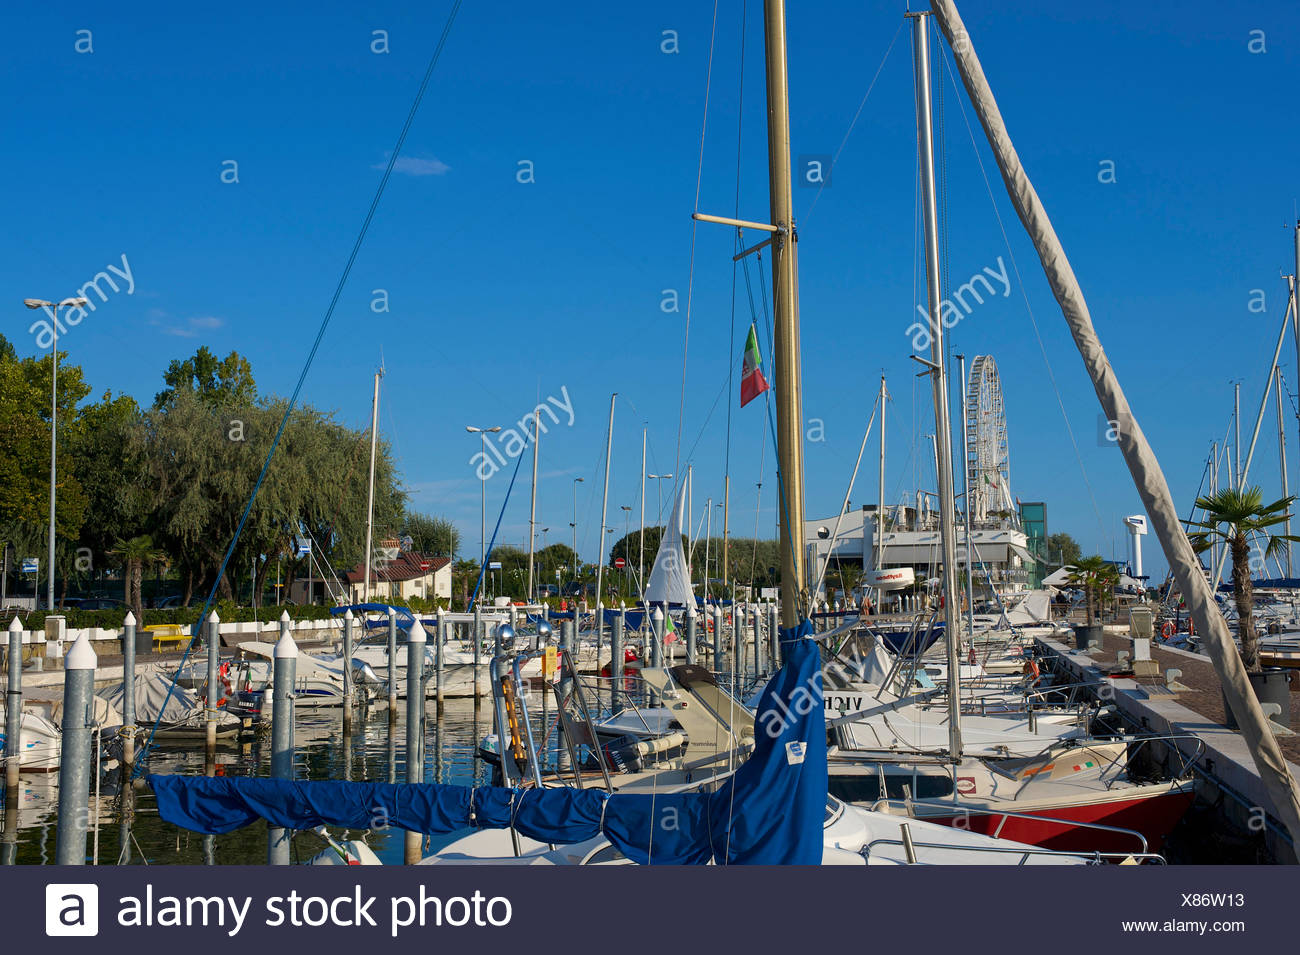 Adriatic, Italy, Europe, outside, day, nobody, Emilia-Romagna, Rimini, yacht harbour, harbour, port, boats, sail boats - Stock Image